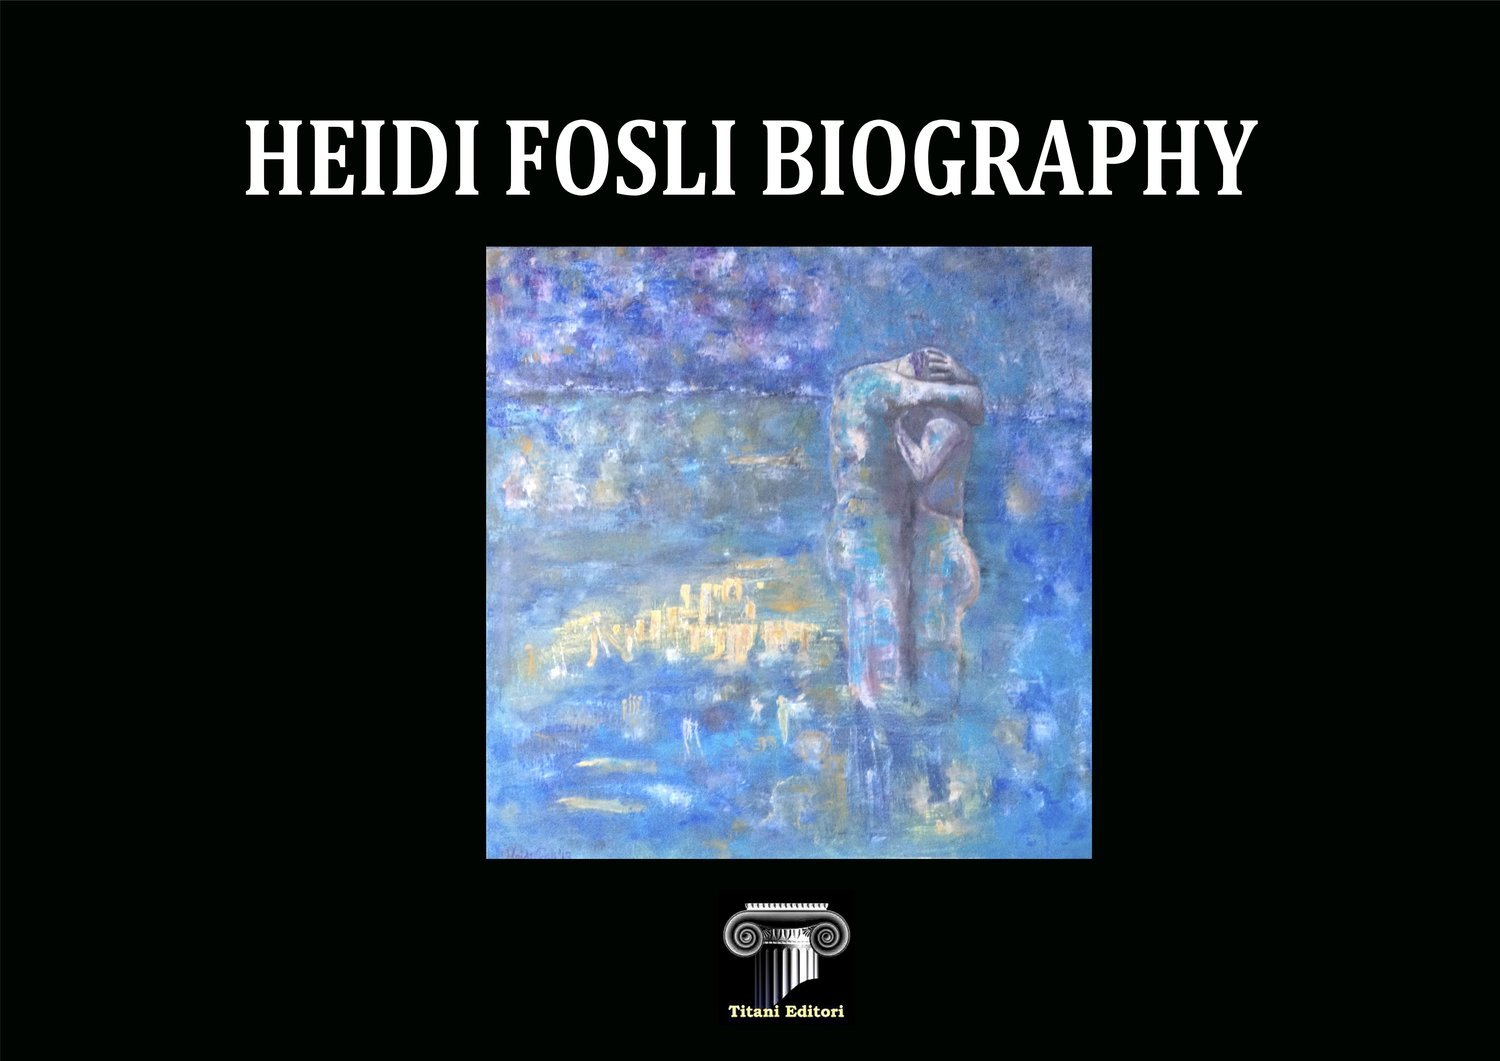 HEIDI FOSLI BIOGRAPHY - Normal Edition b & w